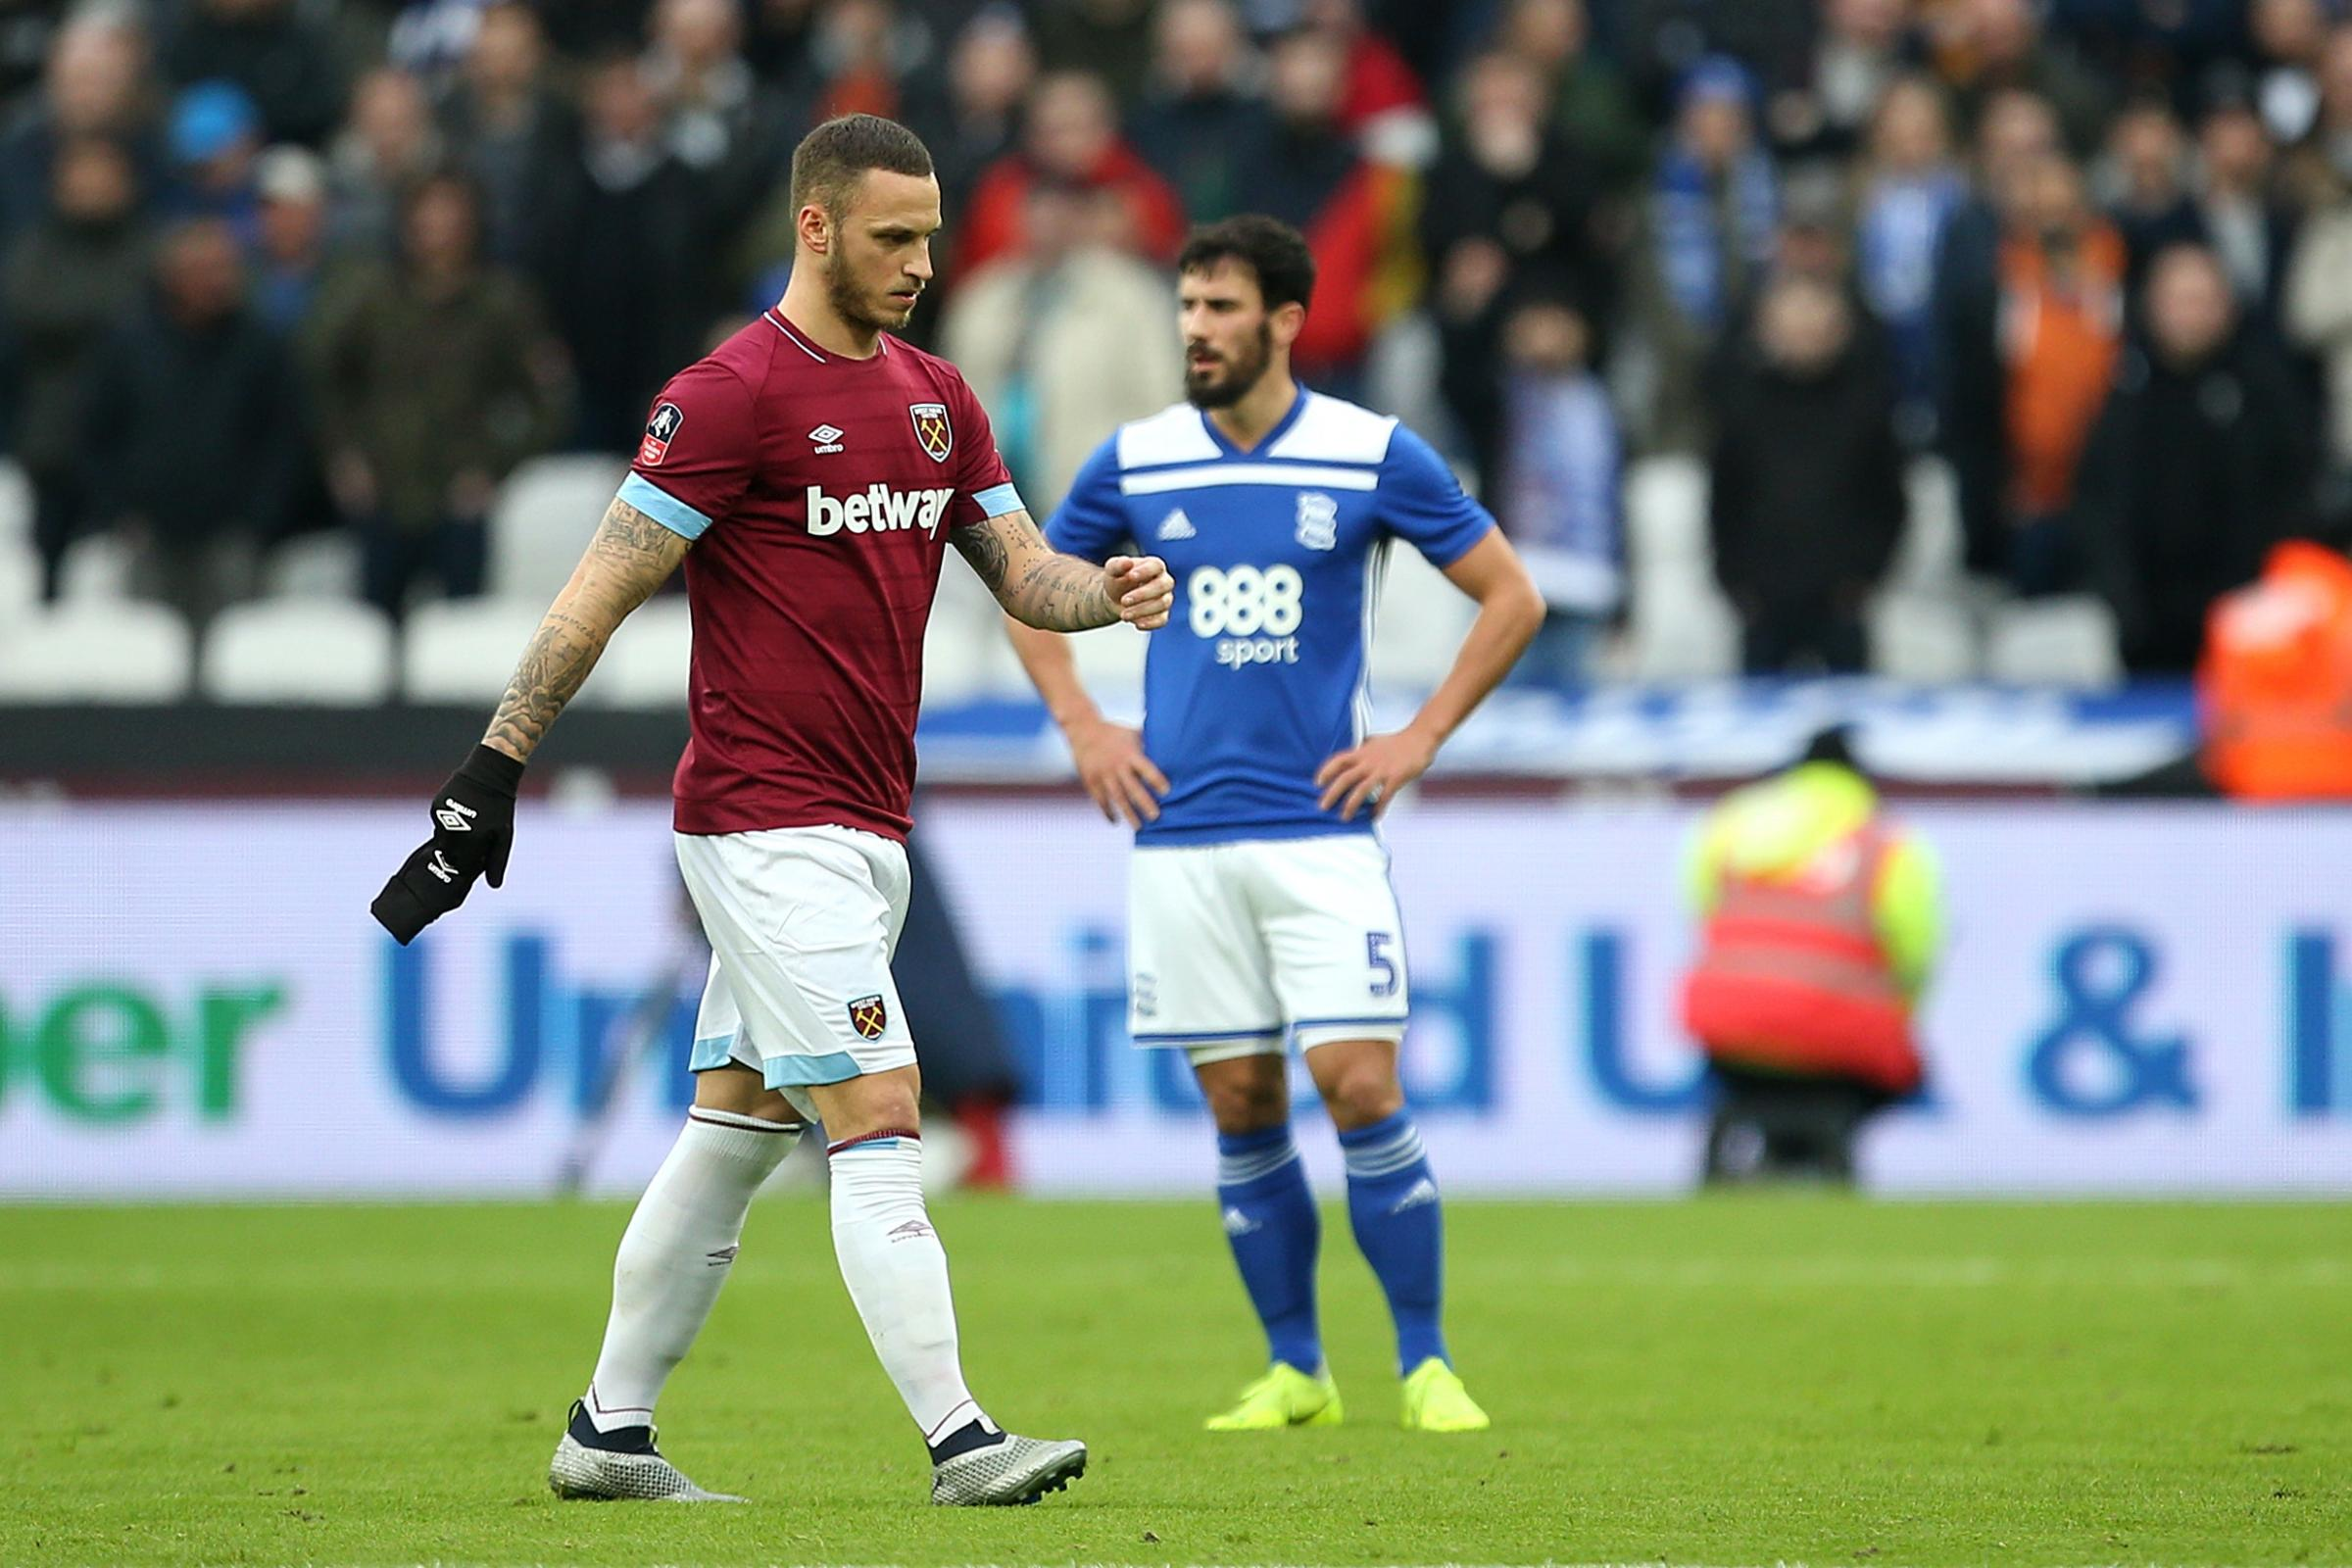 West Ham are adamant Marko Arnautovic will not be sold (Steven Paston/PA).